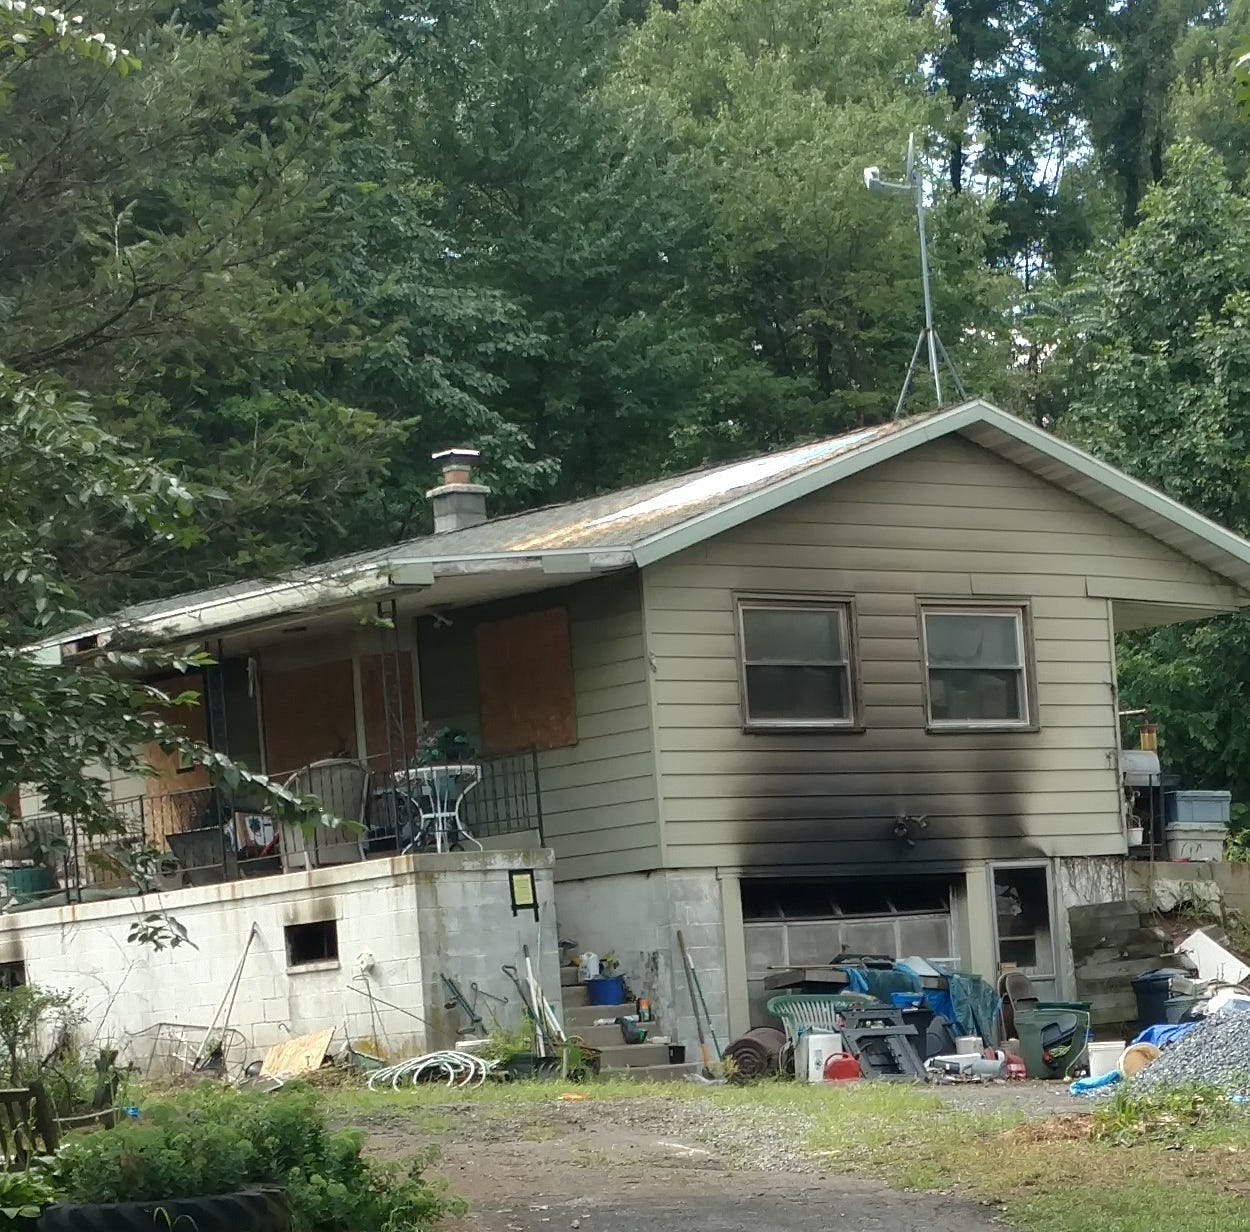 Fire in N. Lebanon kills two cats, destroys home